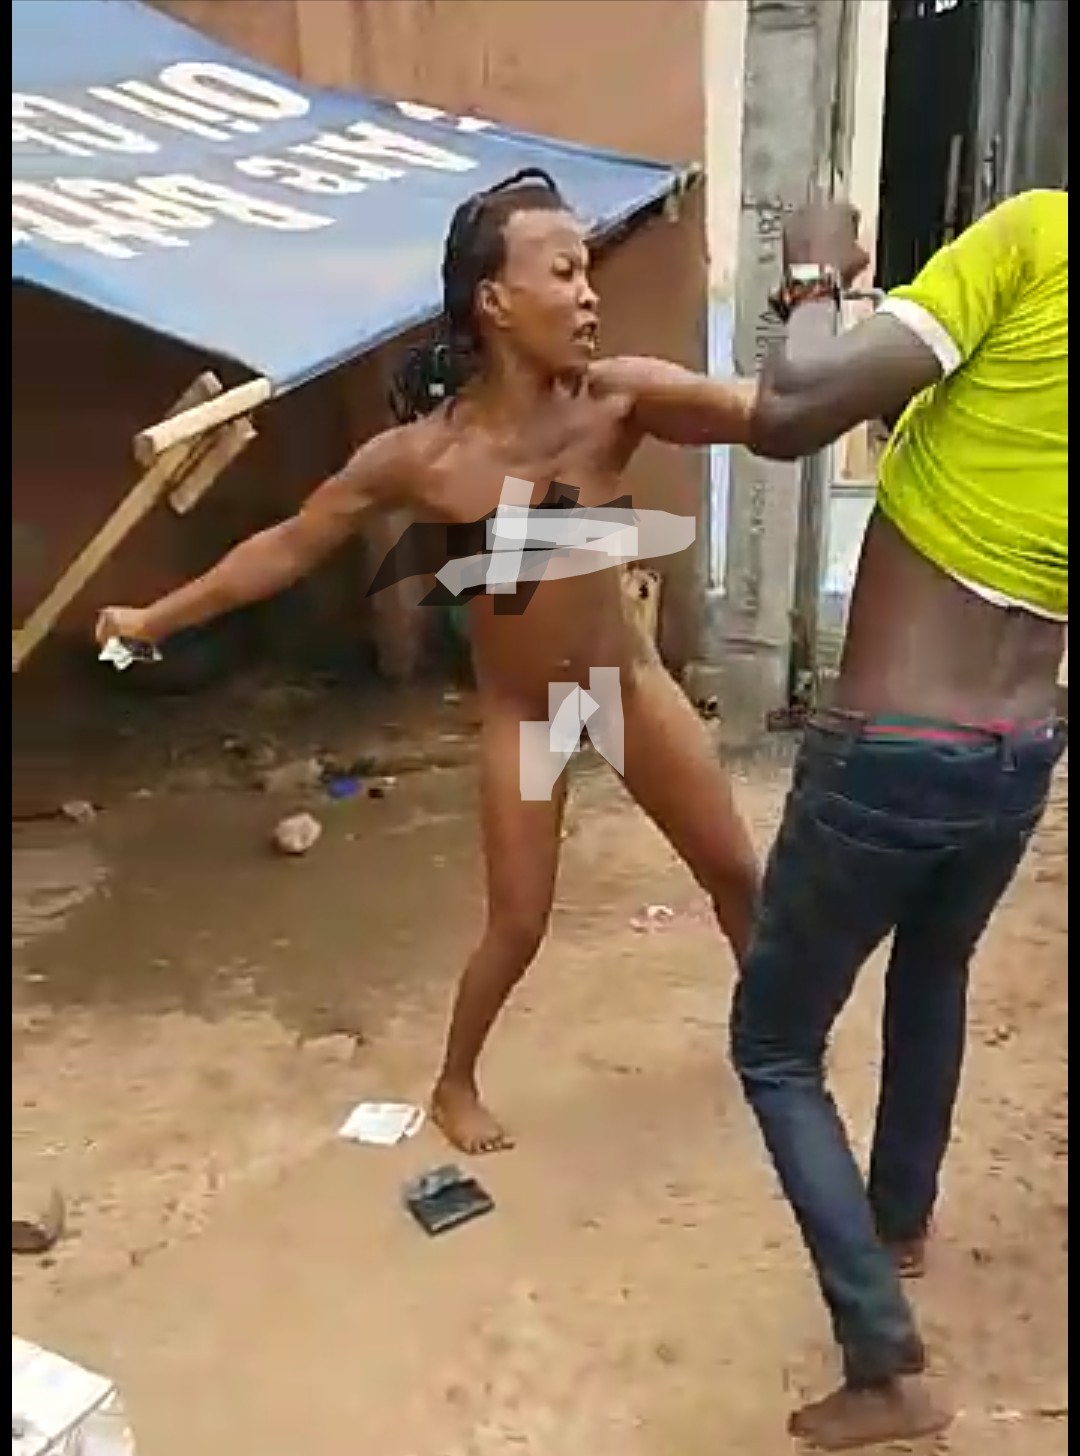 Unclad Lady beats Up A Man In Awka(+ 🔞 Video)